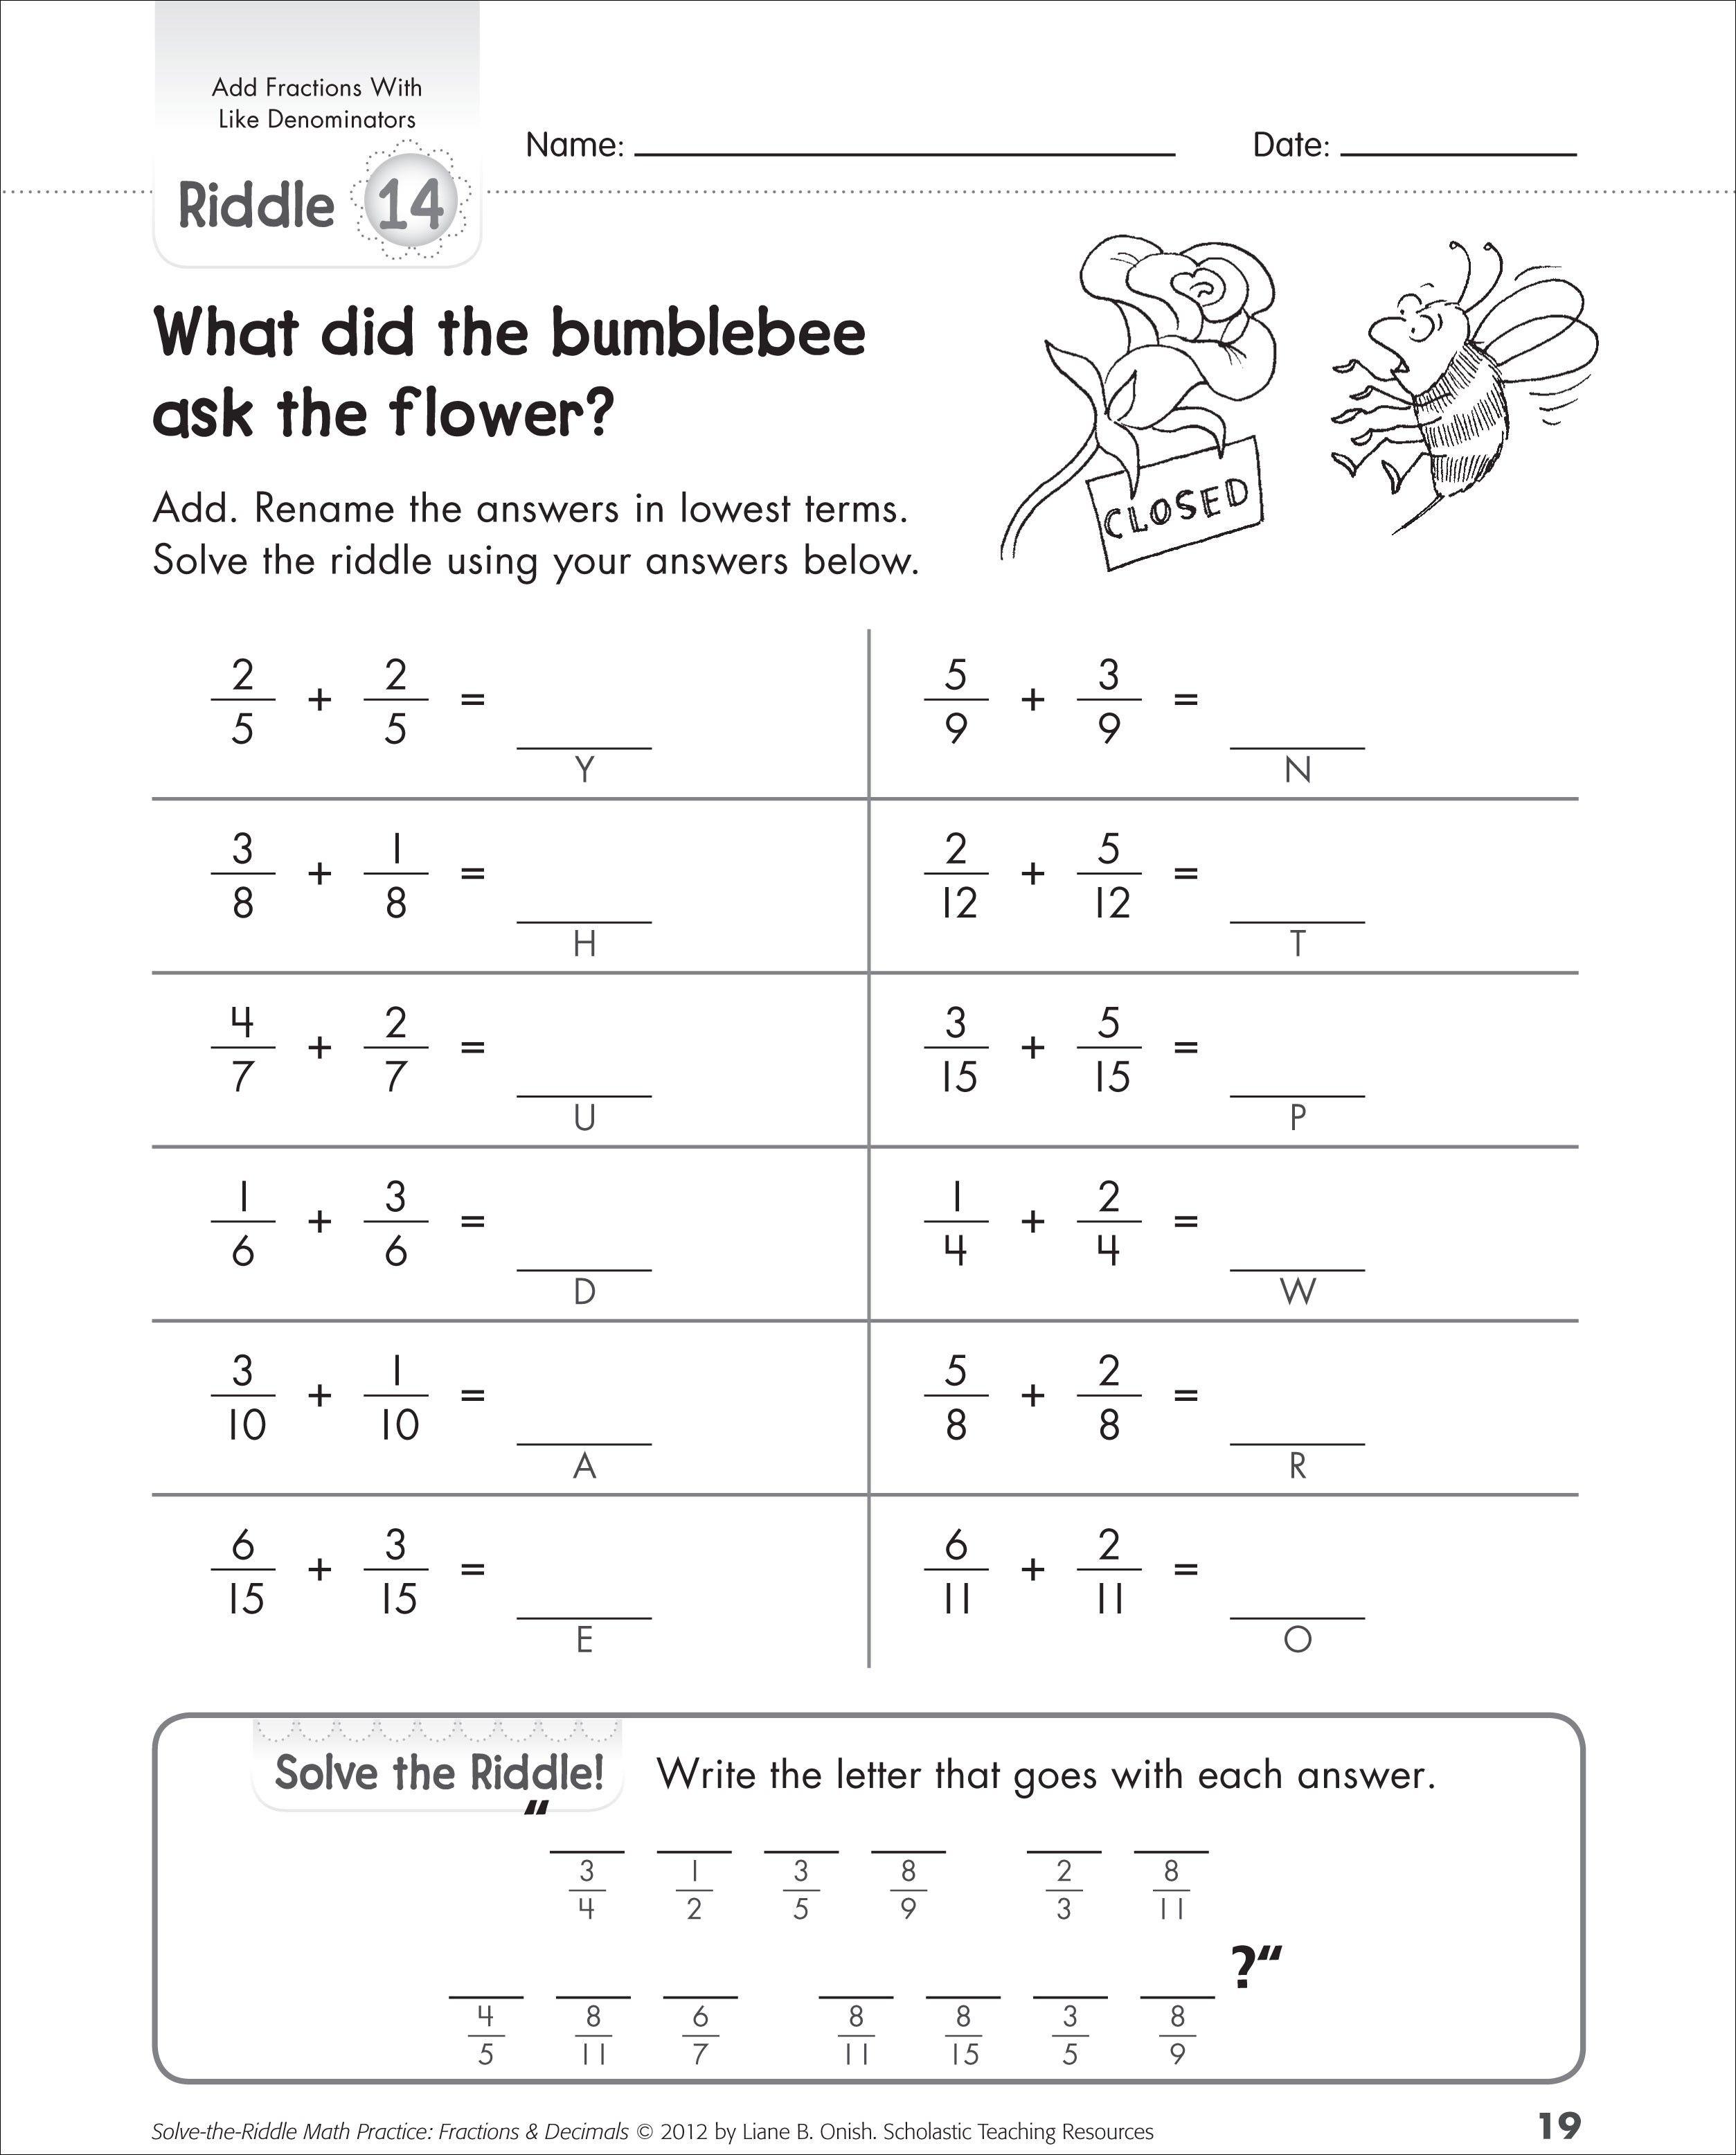 Adding And Subtracting Fractions With Like Denominators Worksheets – Adding Fractions with Same Denominators Worksheet